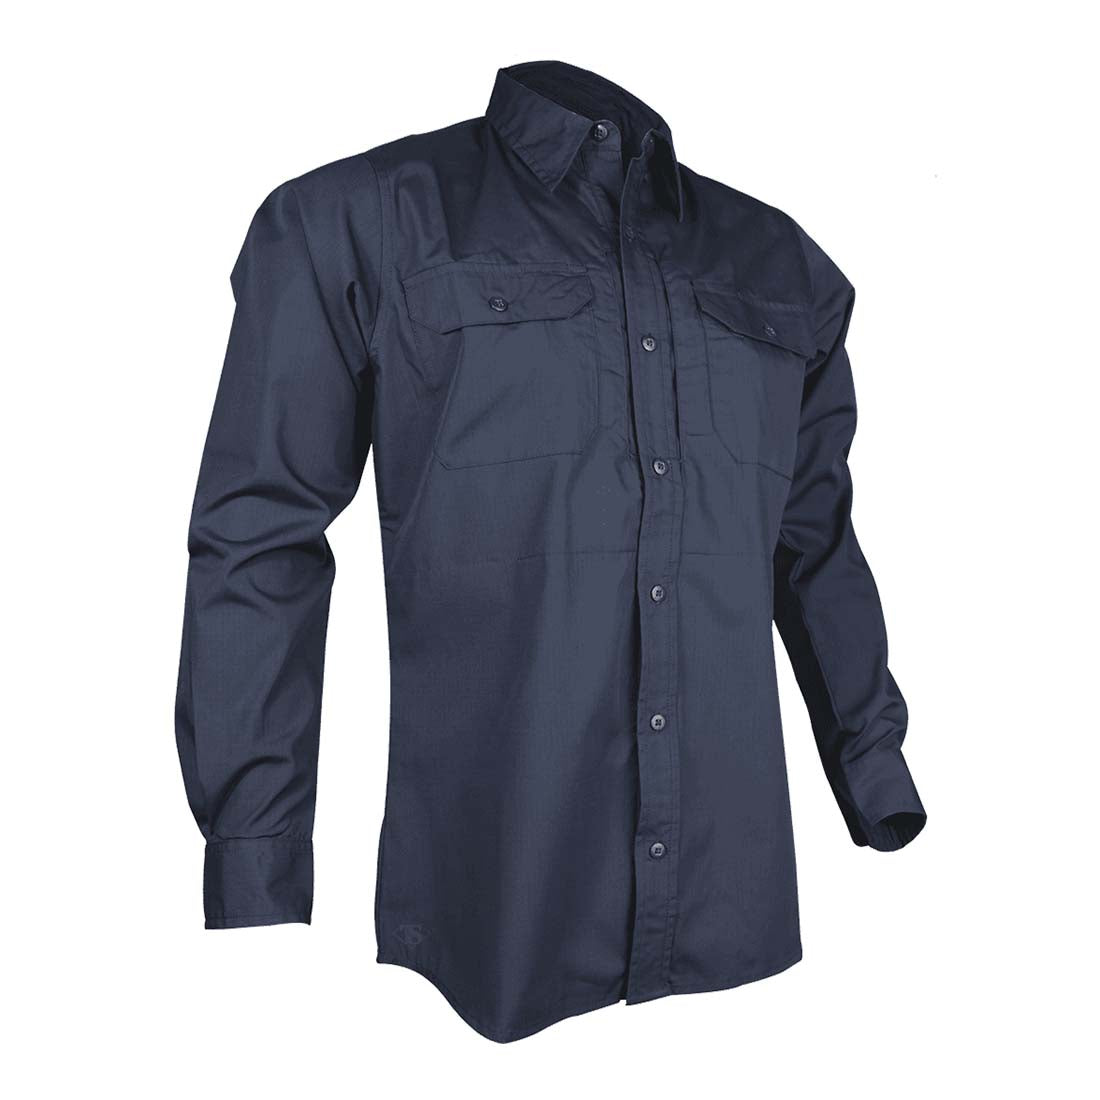 Tru-Spec 24/7 Series Men's Long Sleeve Dress Shirt